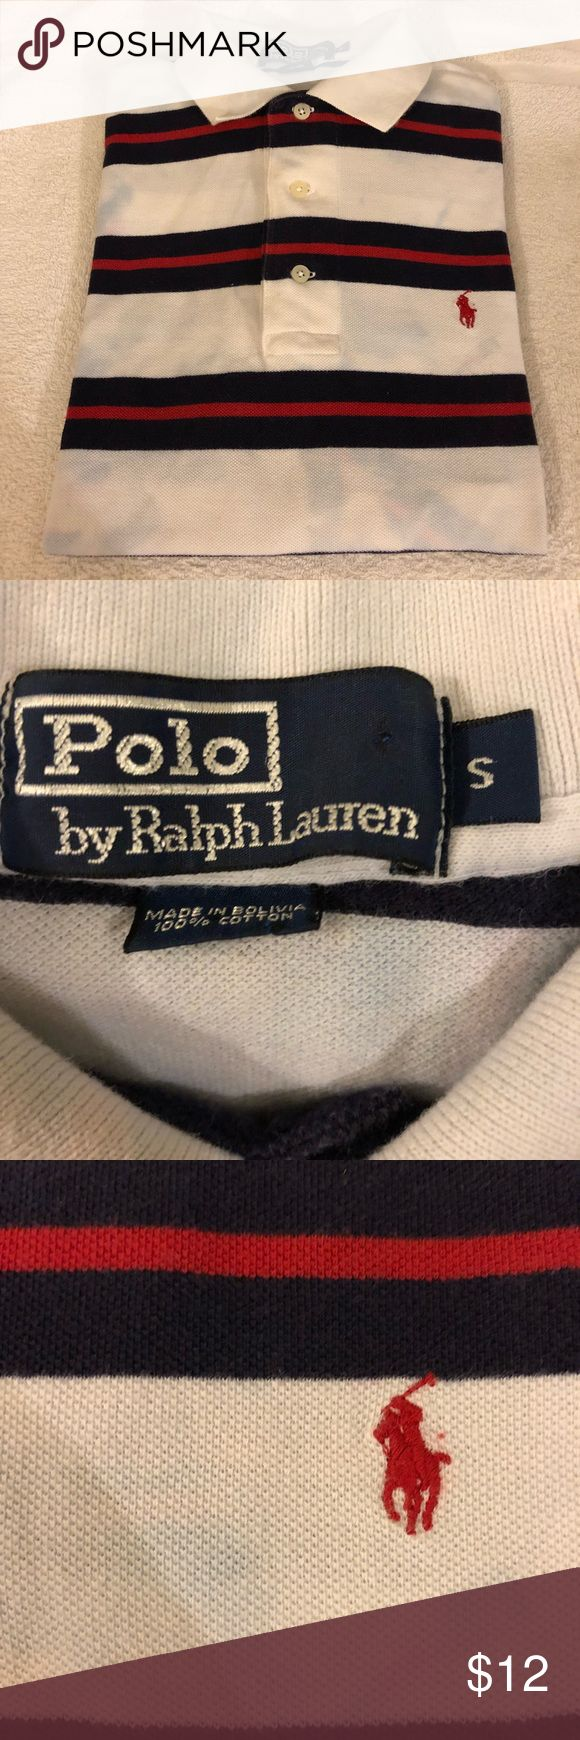 Polo Ralph Lauren White Stripe Distressed Shirt S Polo Ralph Lauren White, Navy Blue and Red Stripe Distressed Short Sleeve Polo Shirt size Small! Great condition! The color mixes are the way the Shirt was made! Please make reasonable offers and bundle! Ask questions! :) Polo by Ralph Lauren Shirts Polos